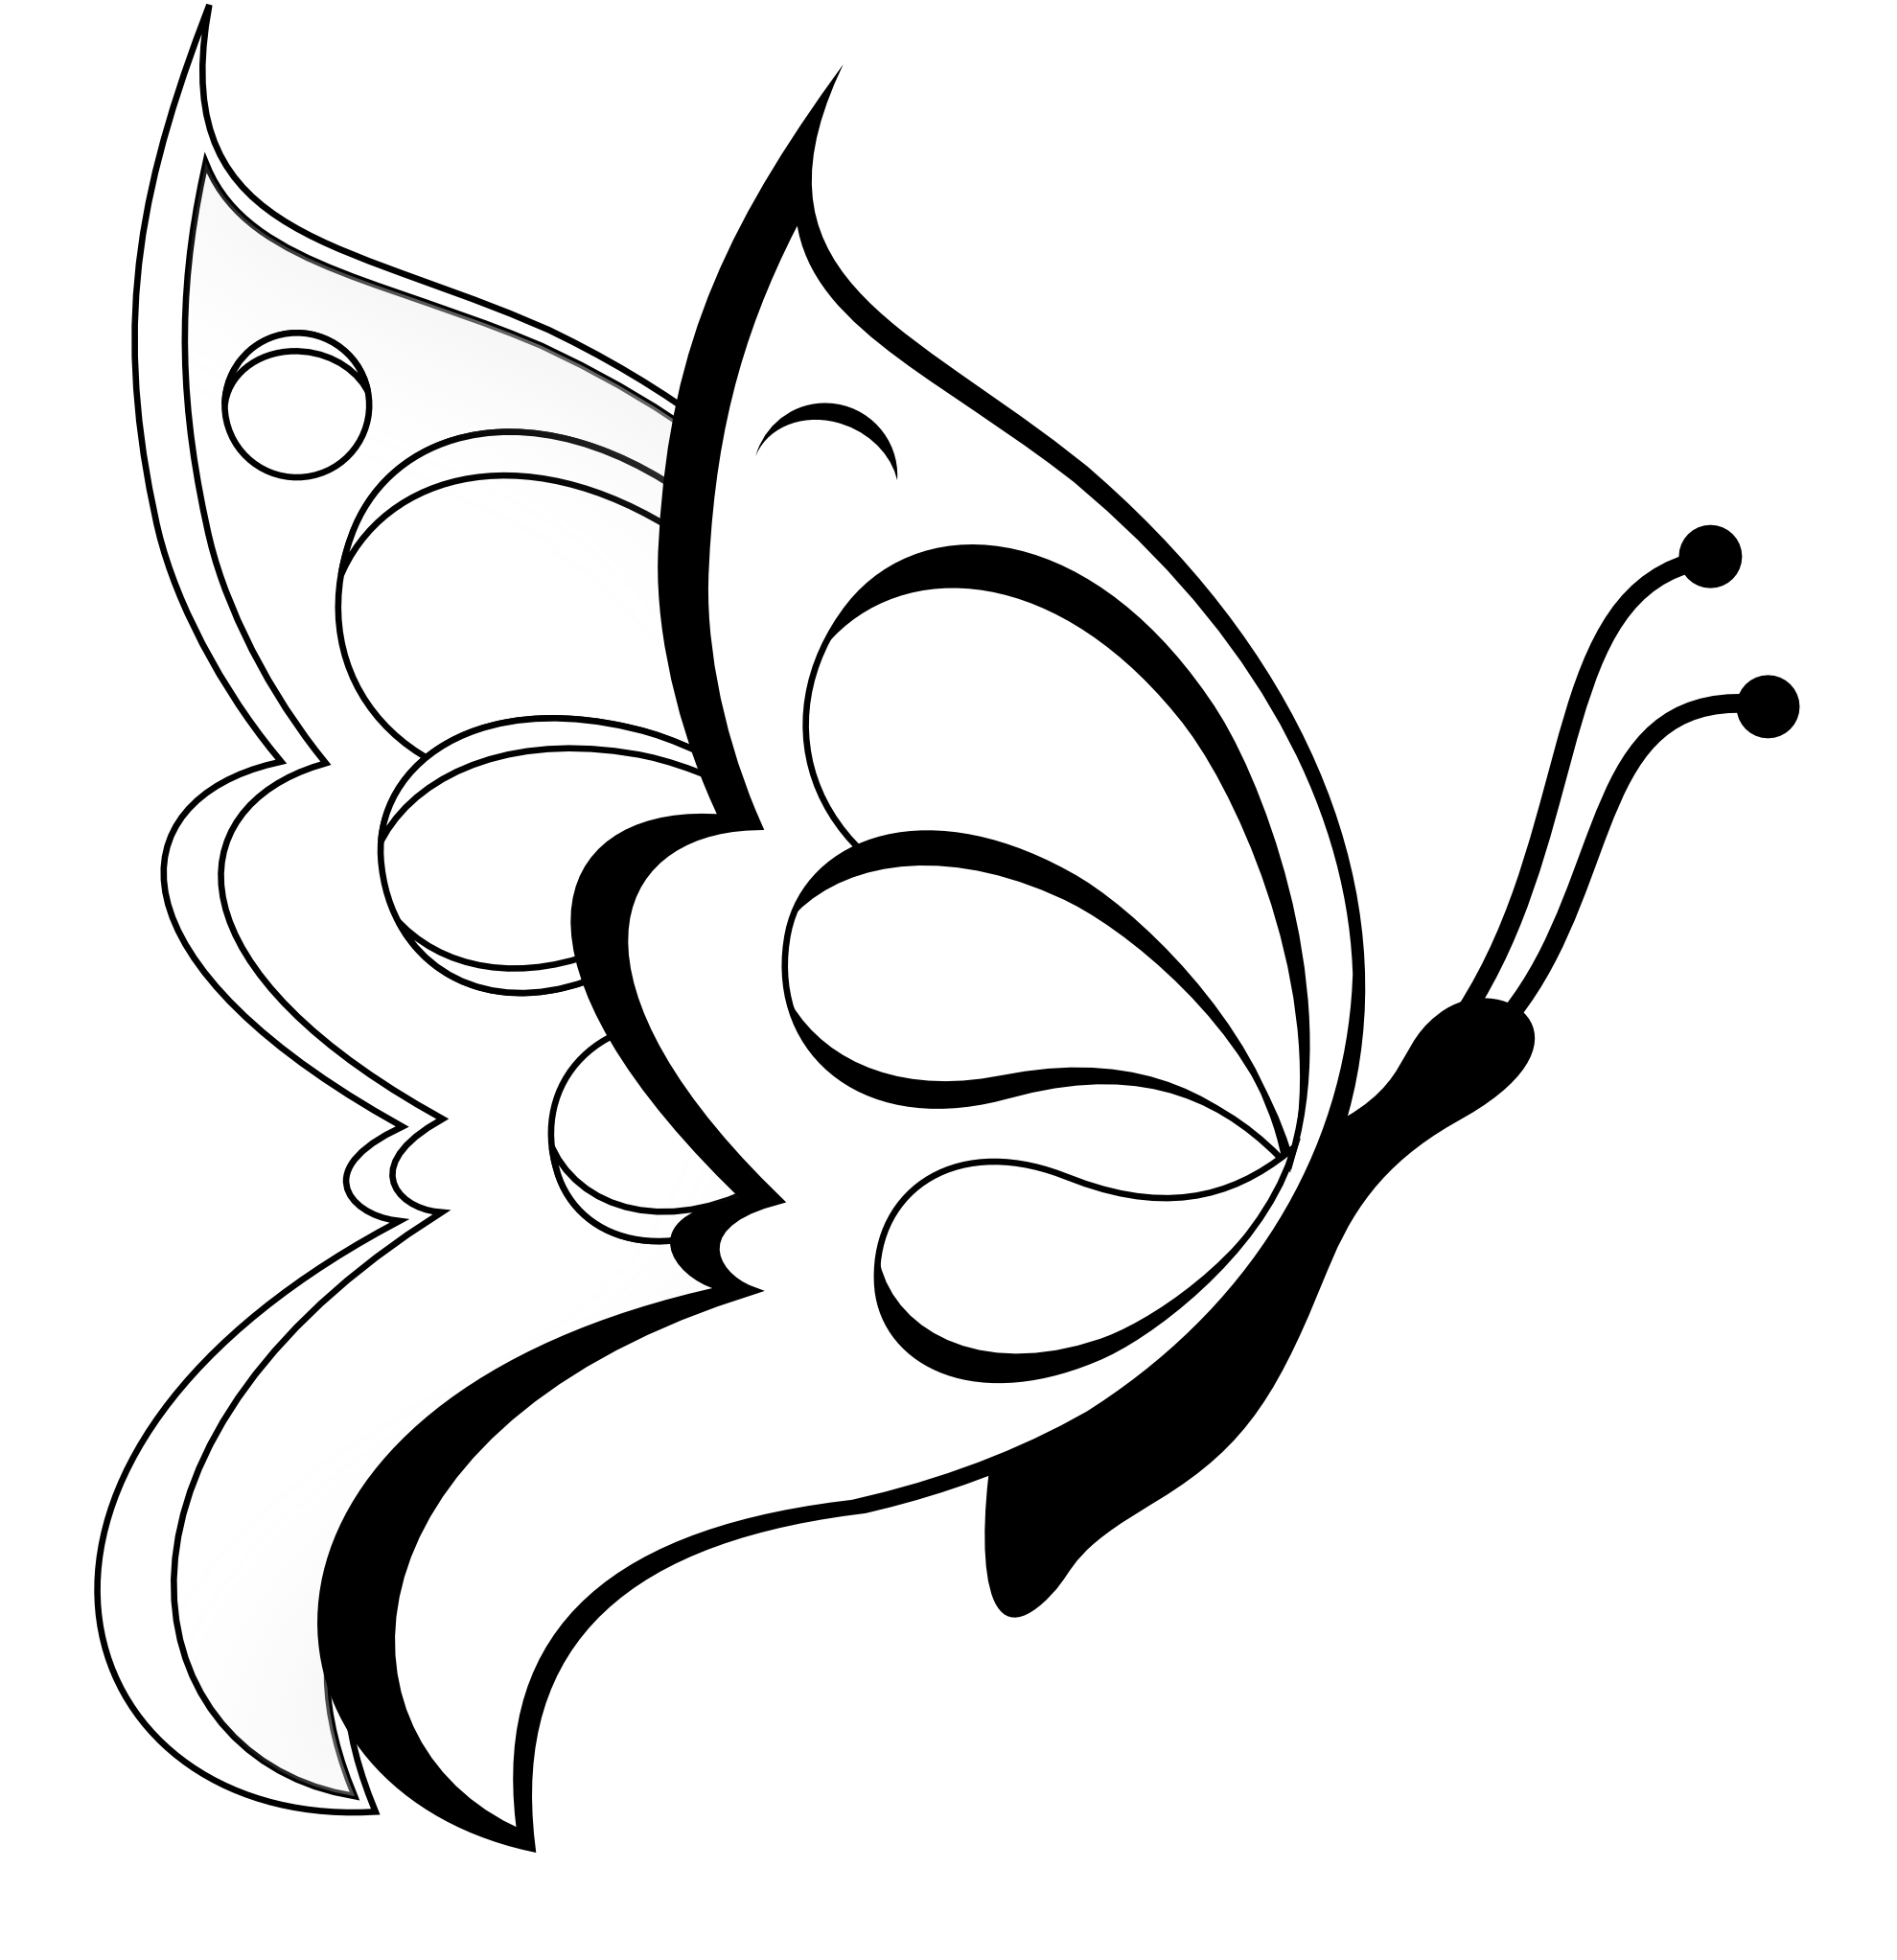 medium resolution of butterfly clipart butterfly 19 black white line art coloring sheet colouring page